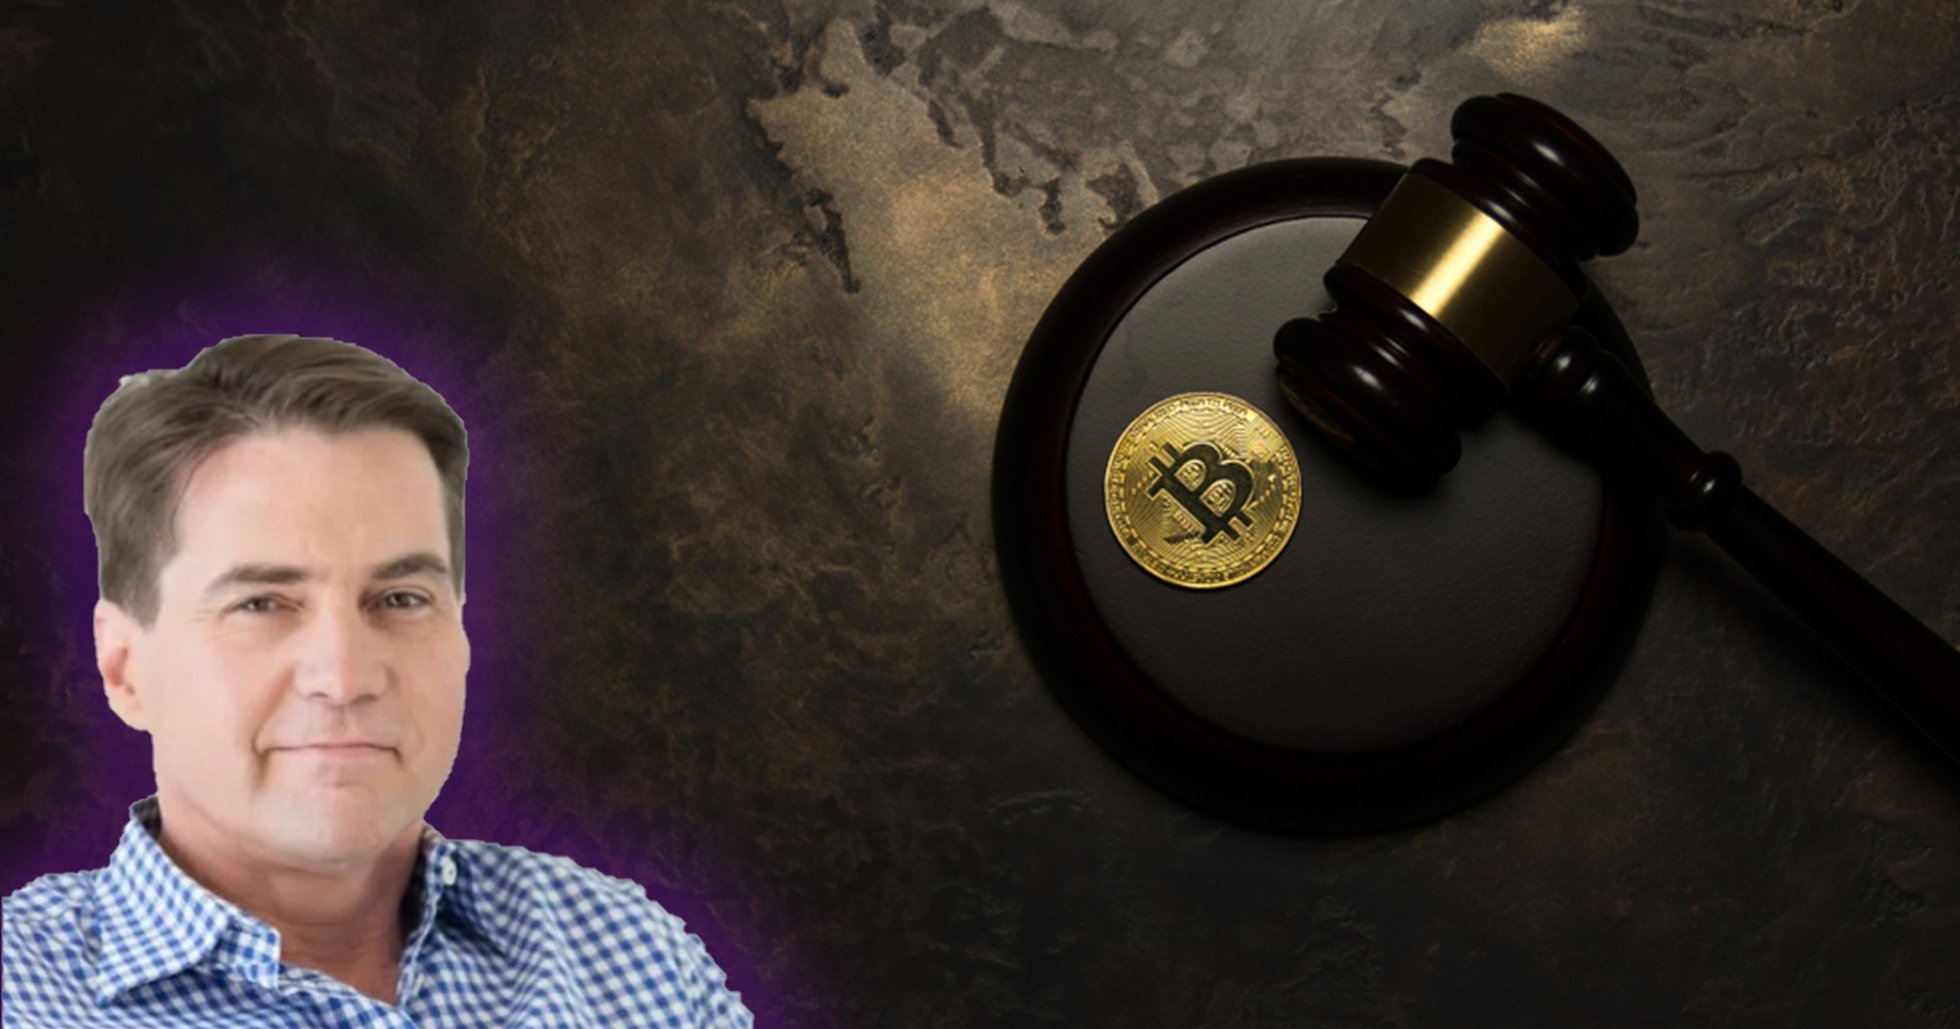 New turn of events in the Craig Wright trial – is accused of forging messages